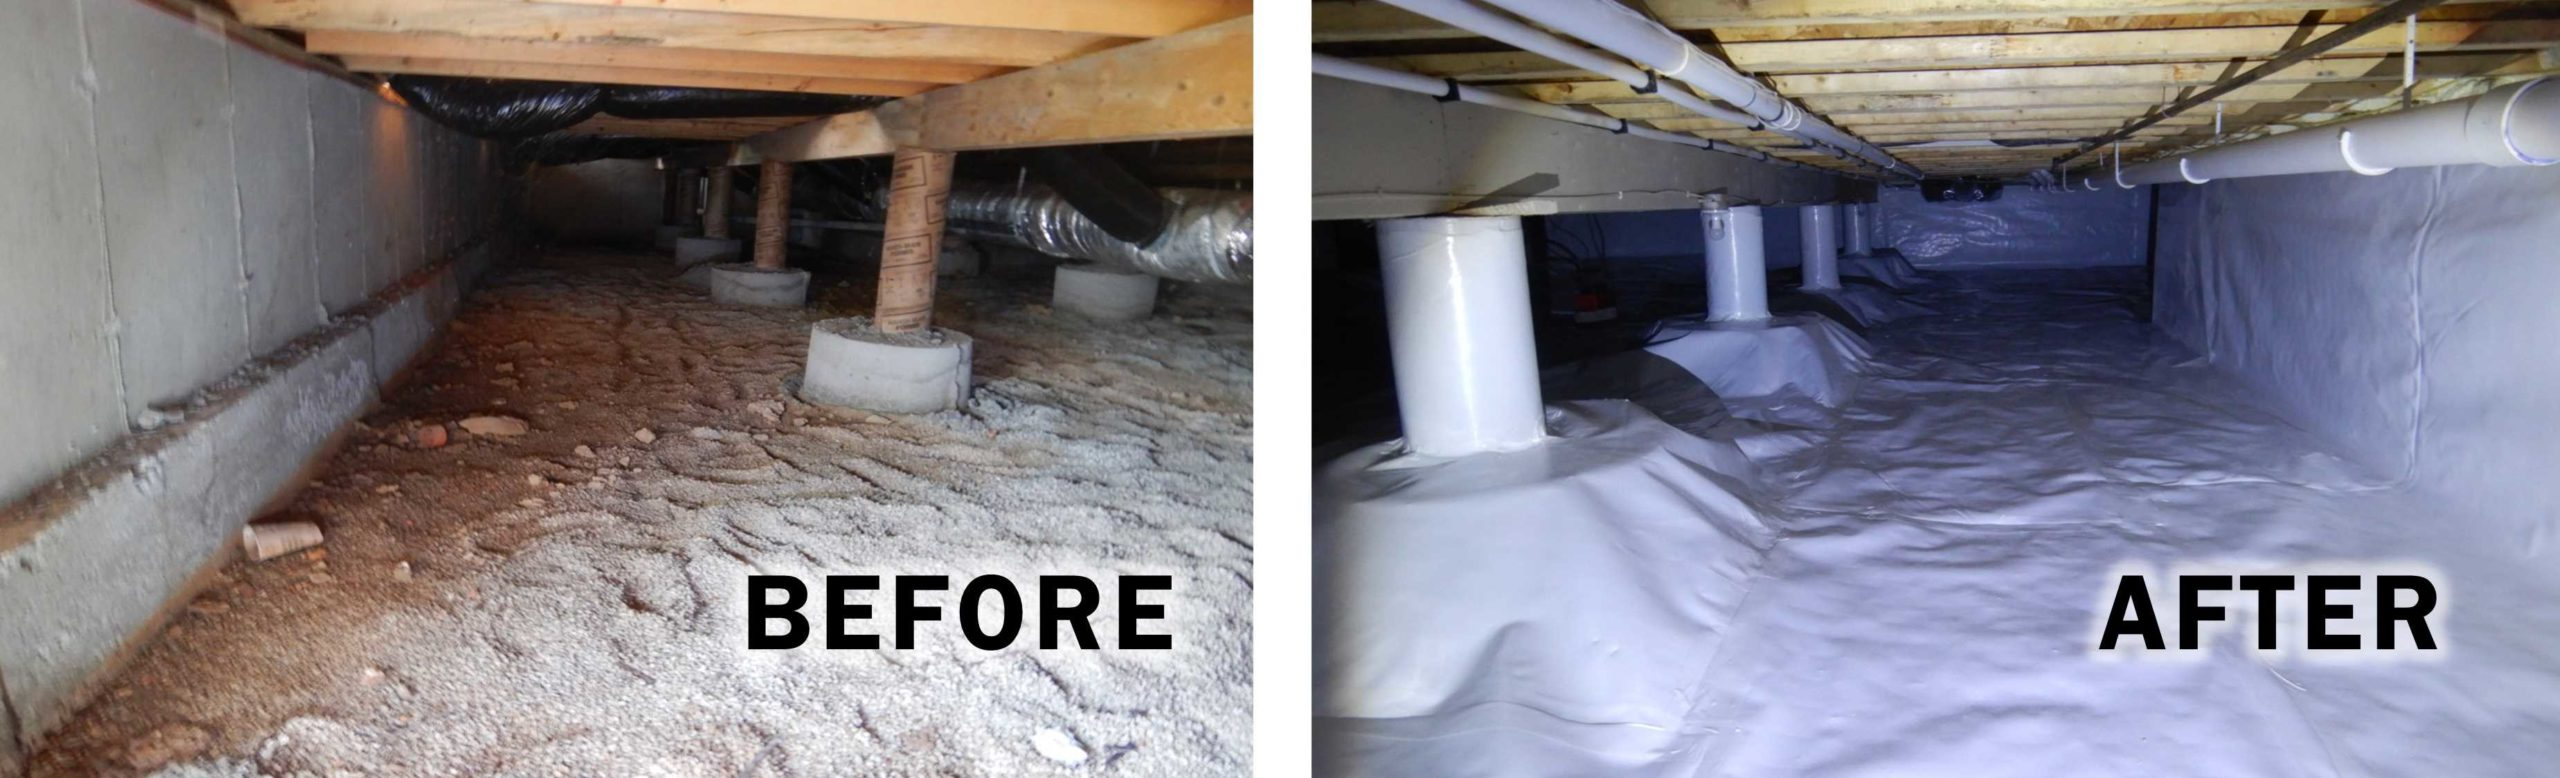 Crawl Space Encapsulation in Springfield Missouri Before And After